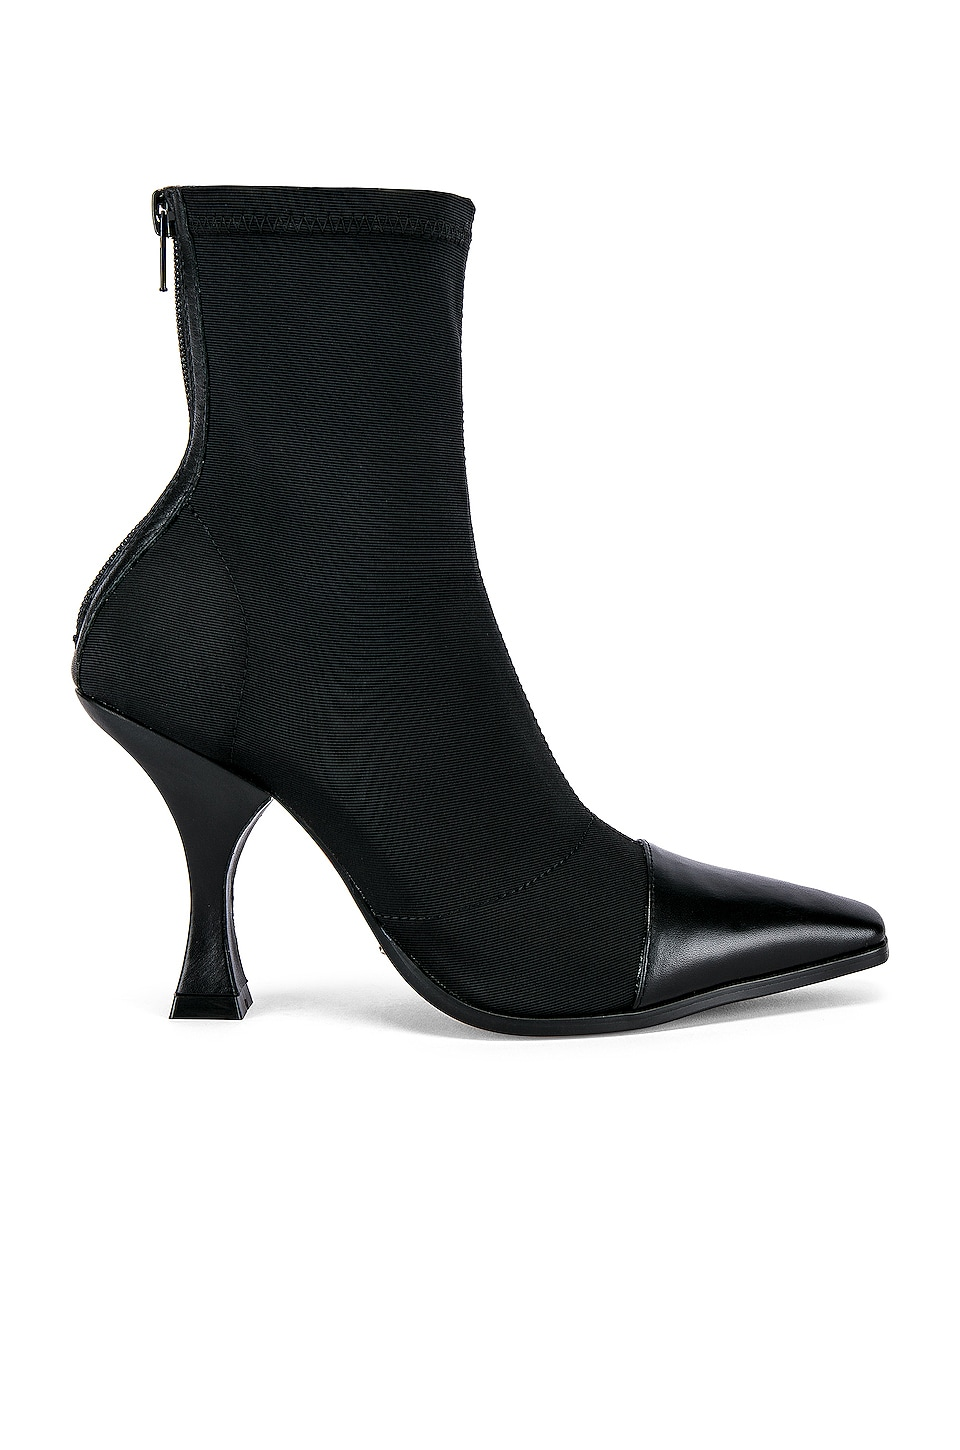 Tony Bianco Khan Bootie in Black Lunar & Black Como